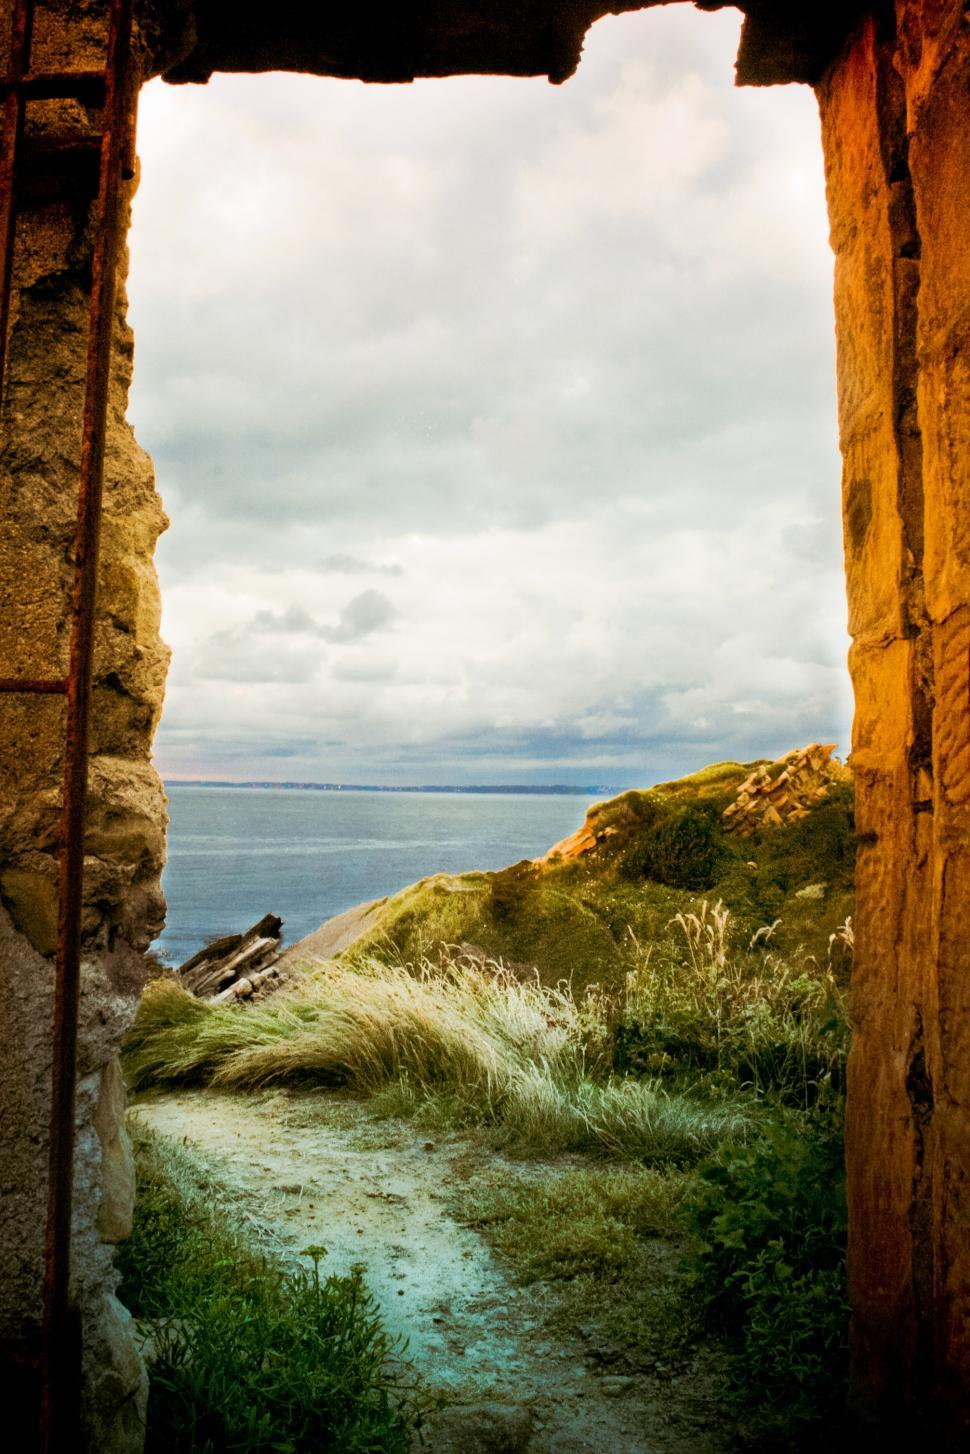 Download Free Stock HD Photo of Landscape beyond arch Online